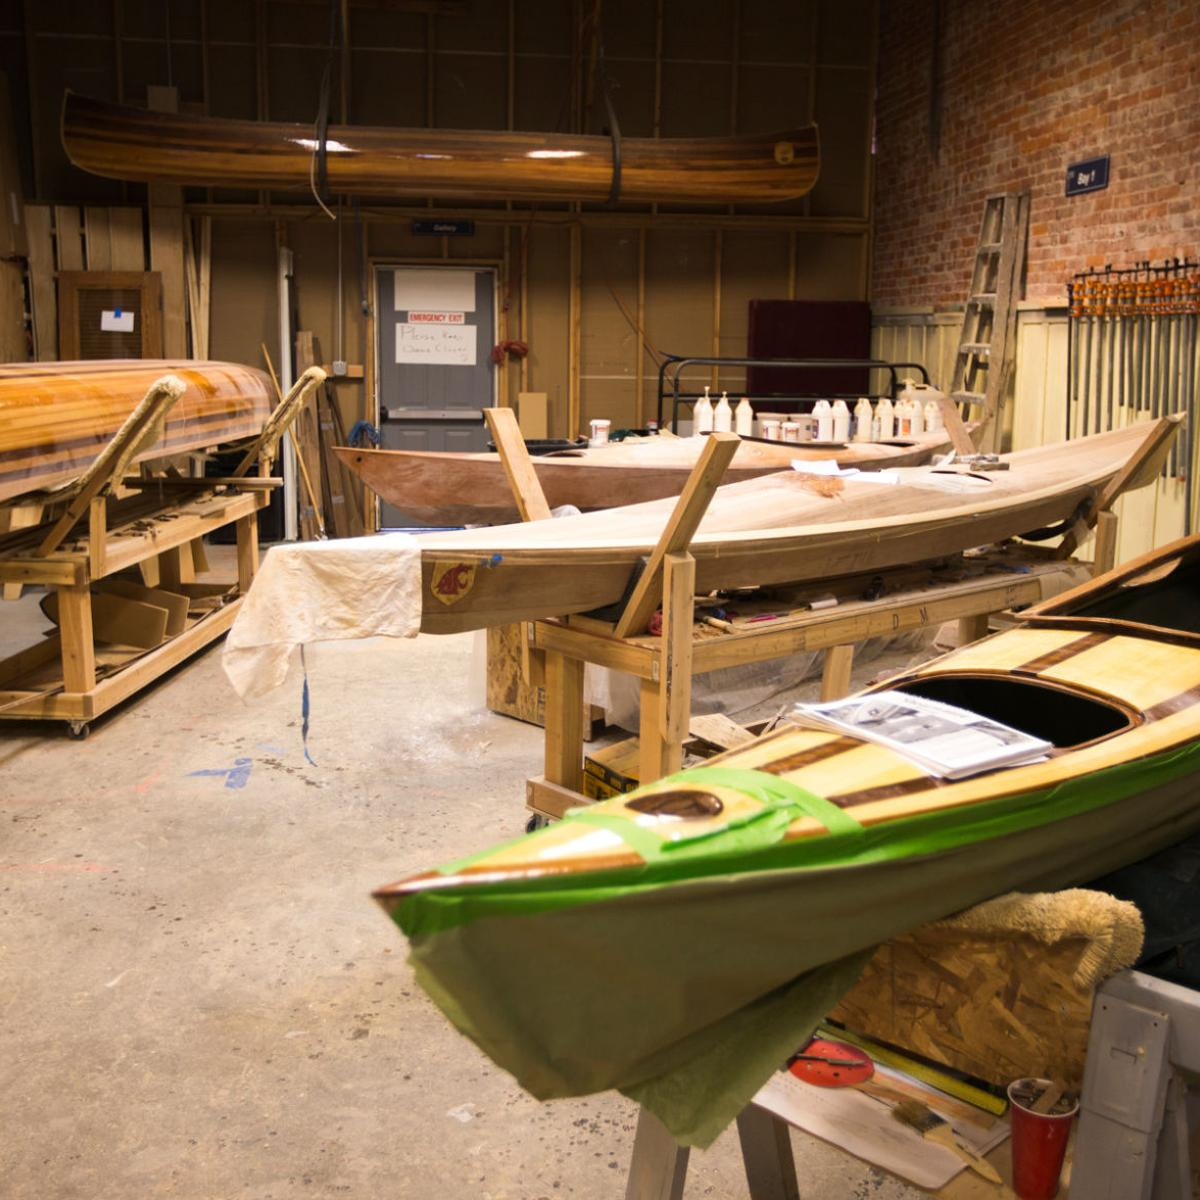 Yakima Maker Space S Struggles Show How Tough It Is For An Arts Nonprofit To Survive Local Yakimaherald Com